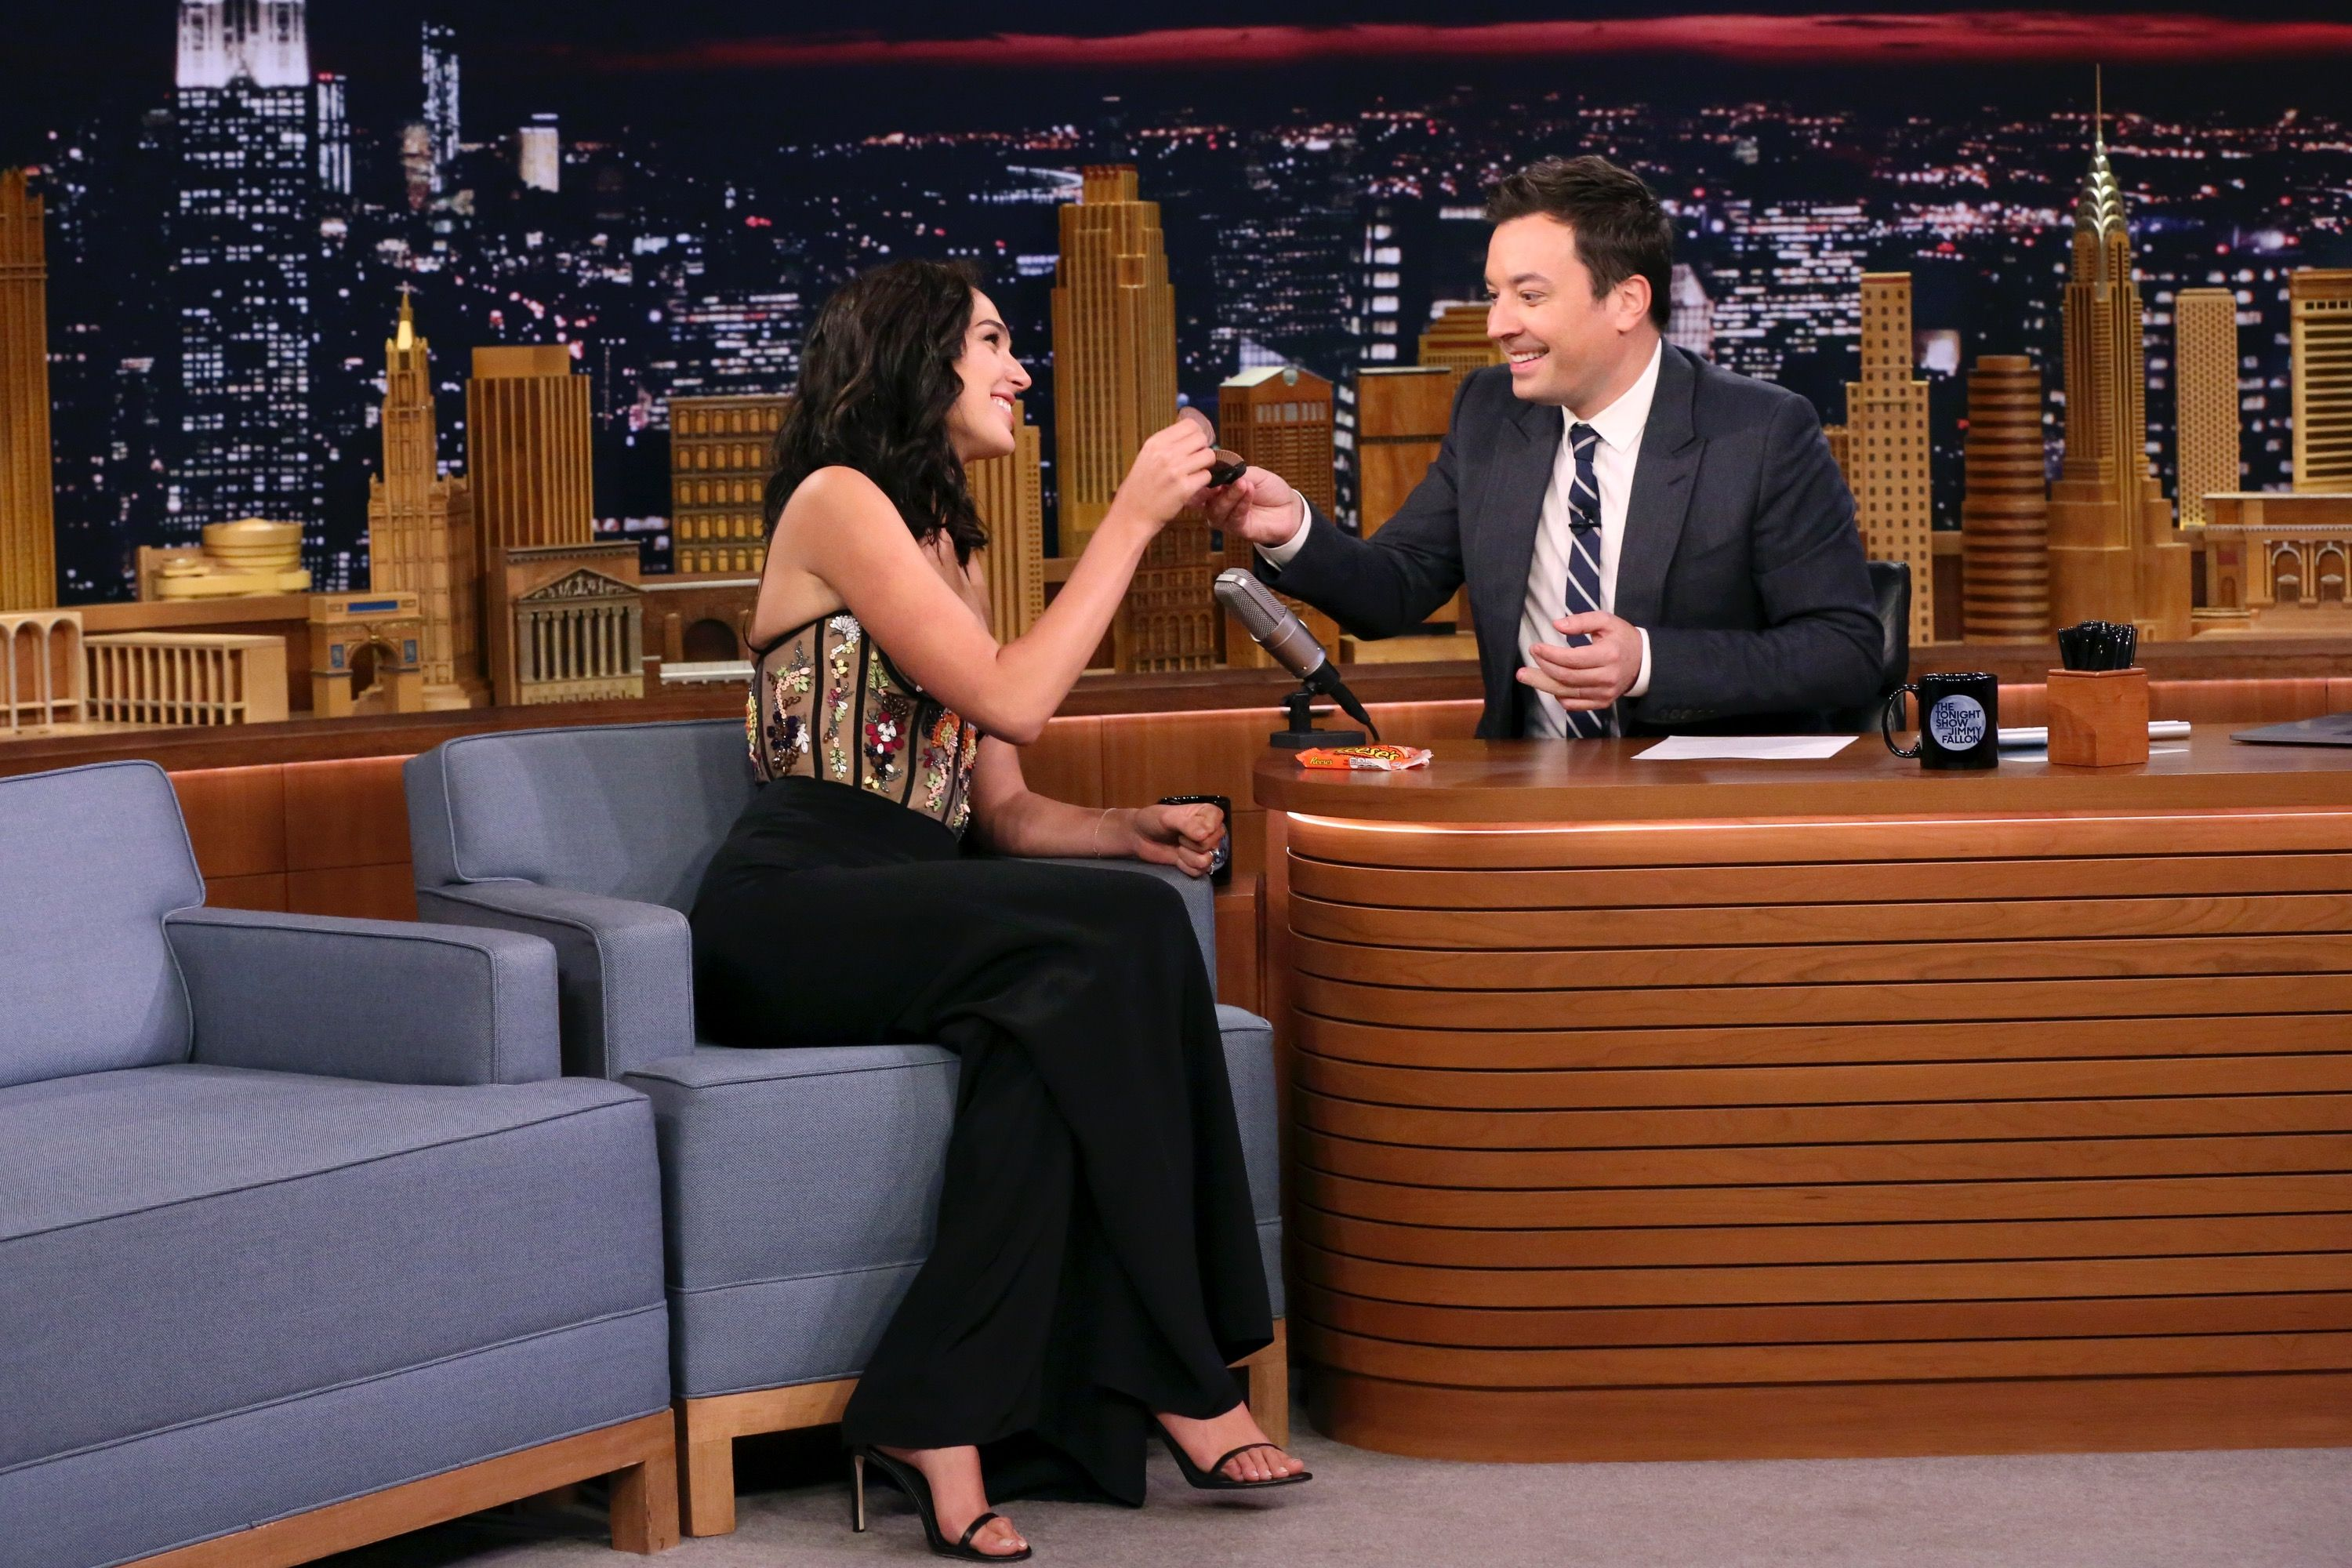 Actress Gal Gadot During An Interview With Host Jimmy Fallon On October 5,  2017